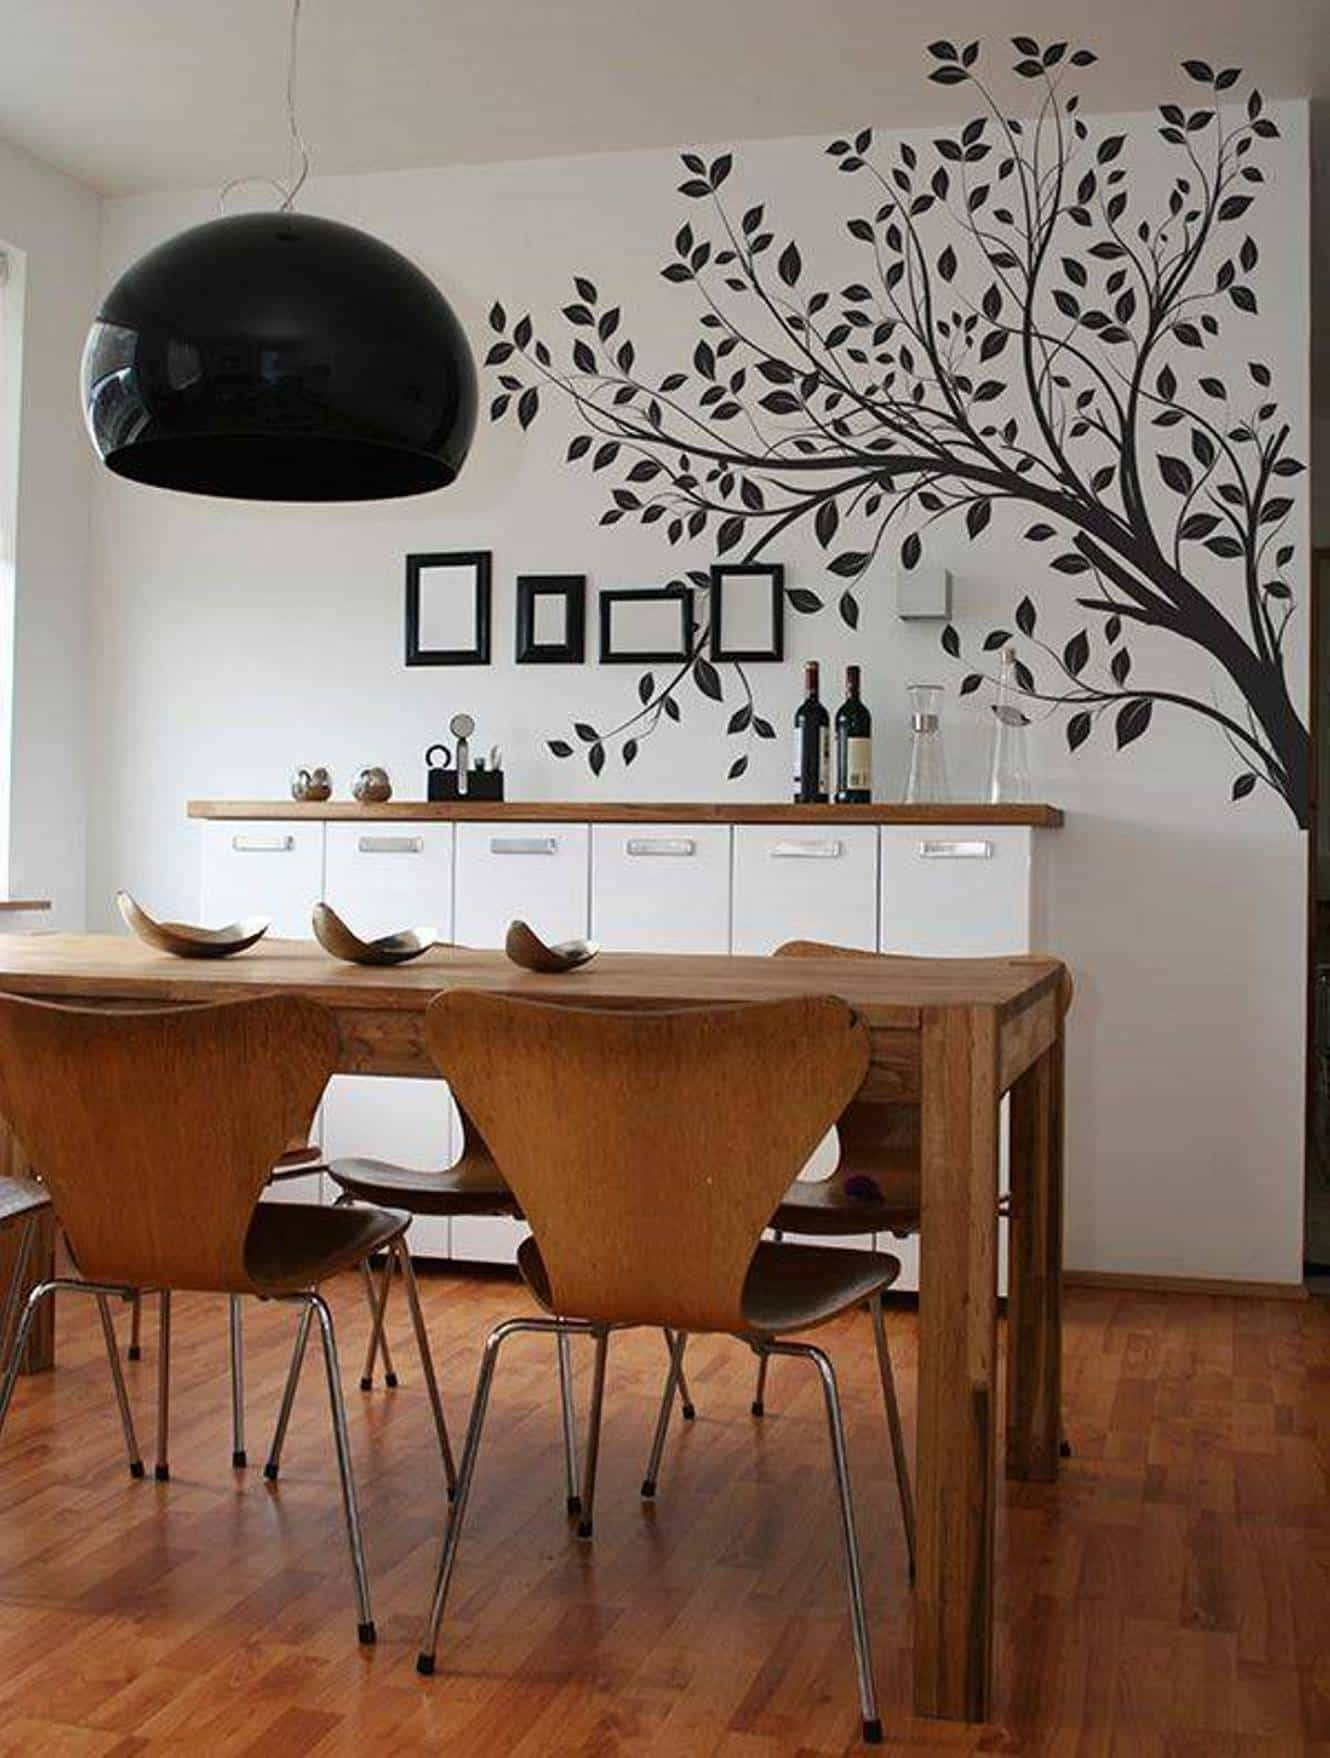 Dining Room Wall Art Tree Decal – Beautiful Dining Room Wall Art Intended For Most Up To Date Dining Wall Art (View 15 of 25)